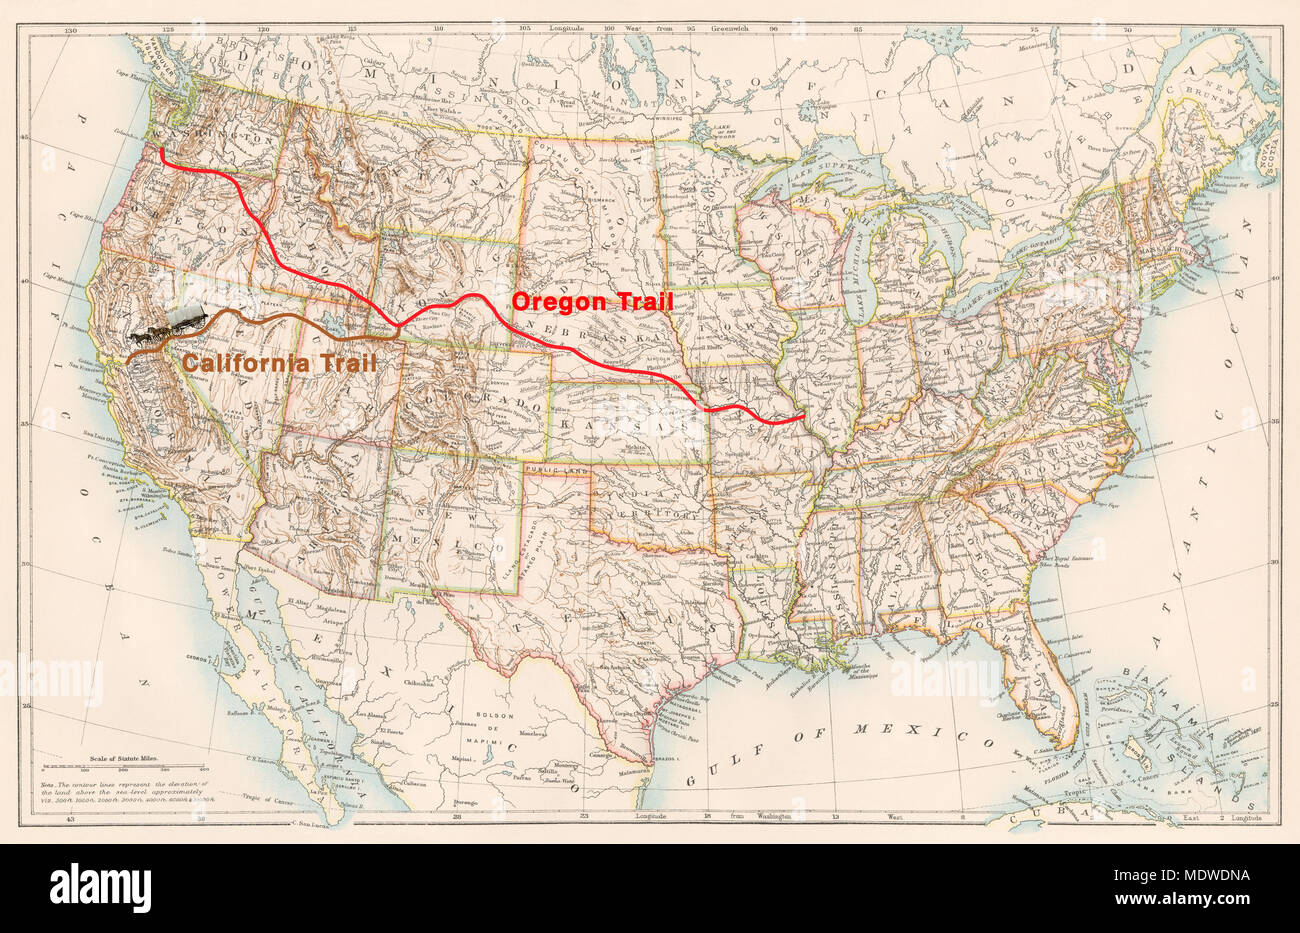 Oregon Trail And California Trail Routes On An 1870s Map Of The Us - California-on-the-us-map